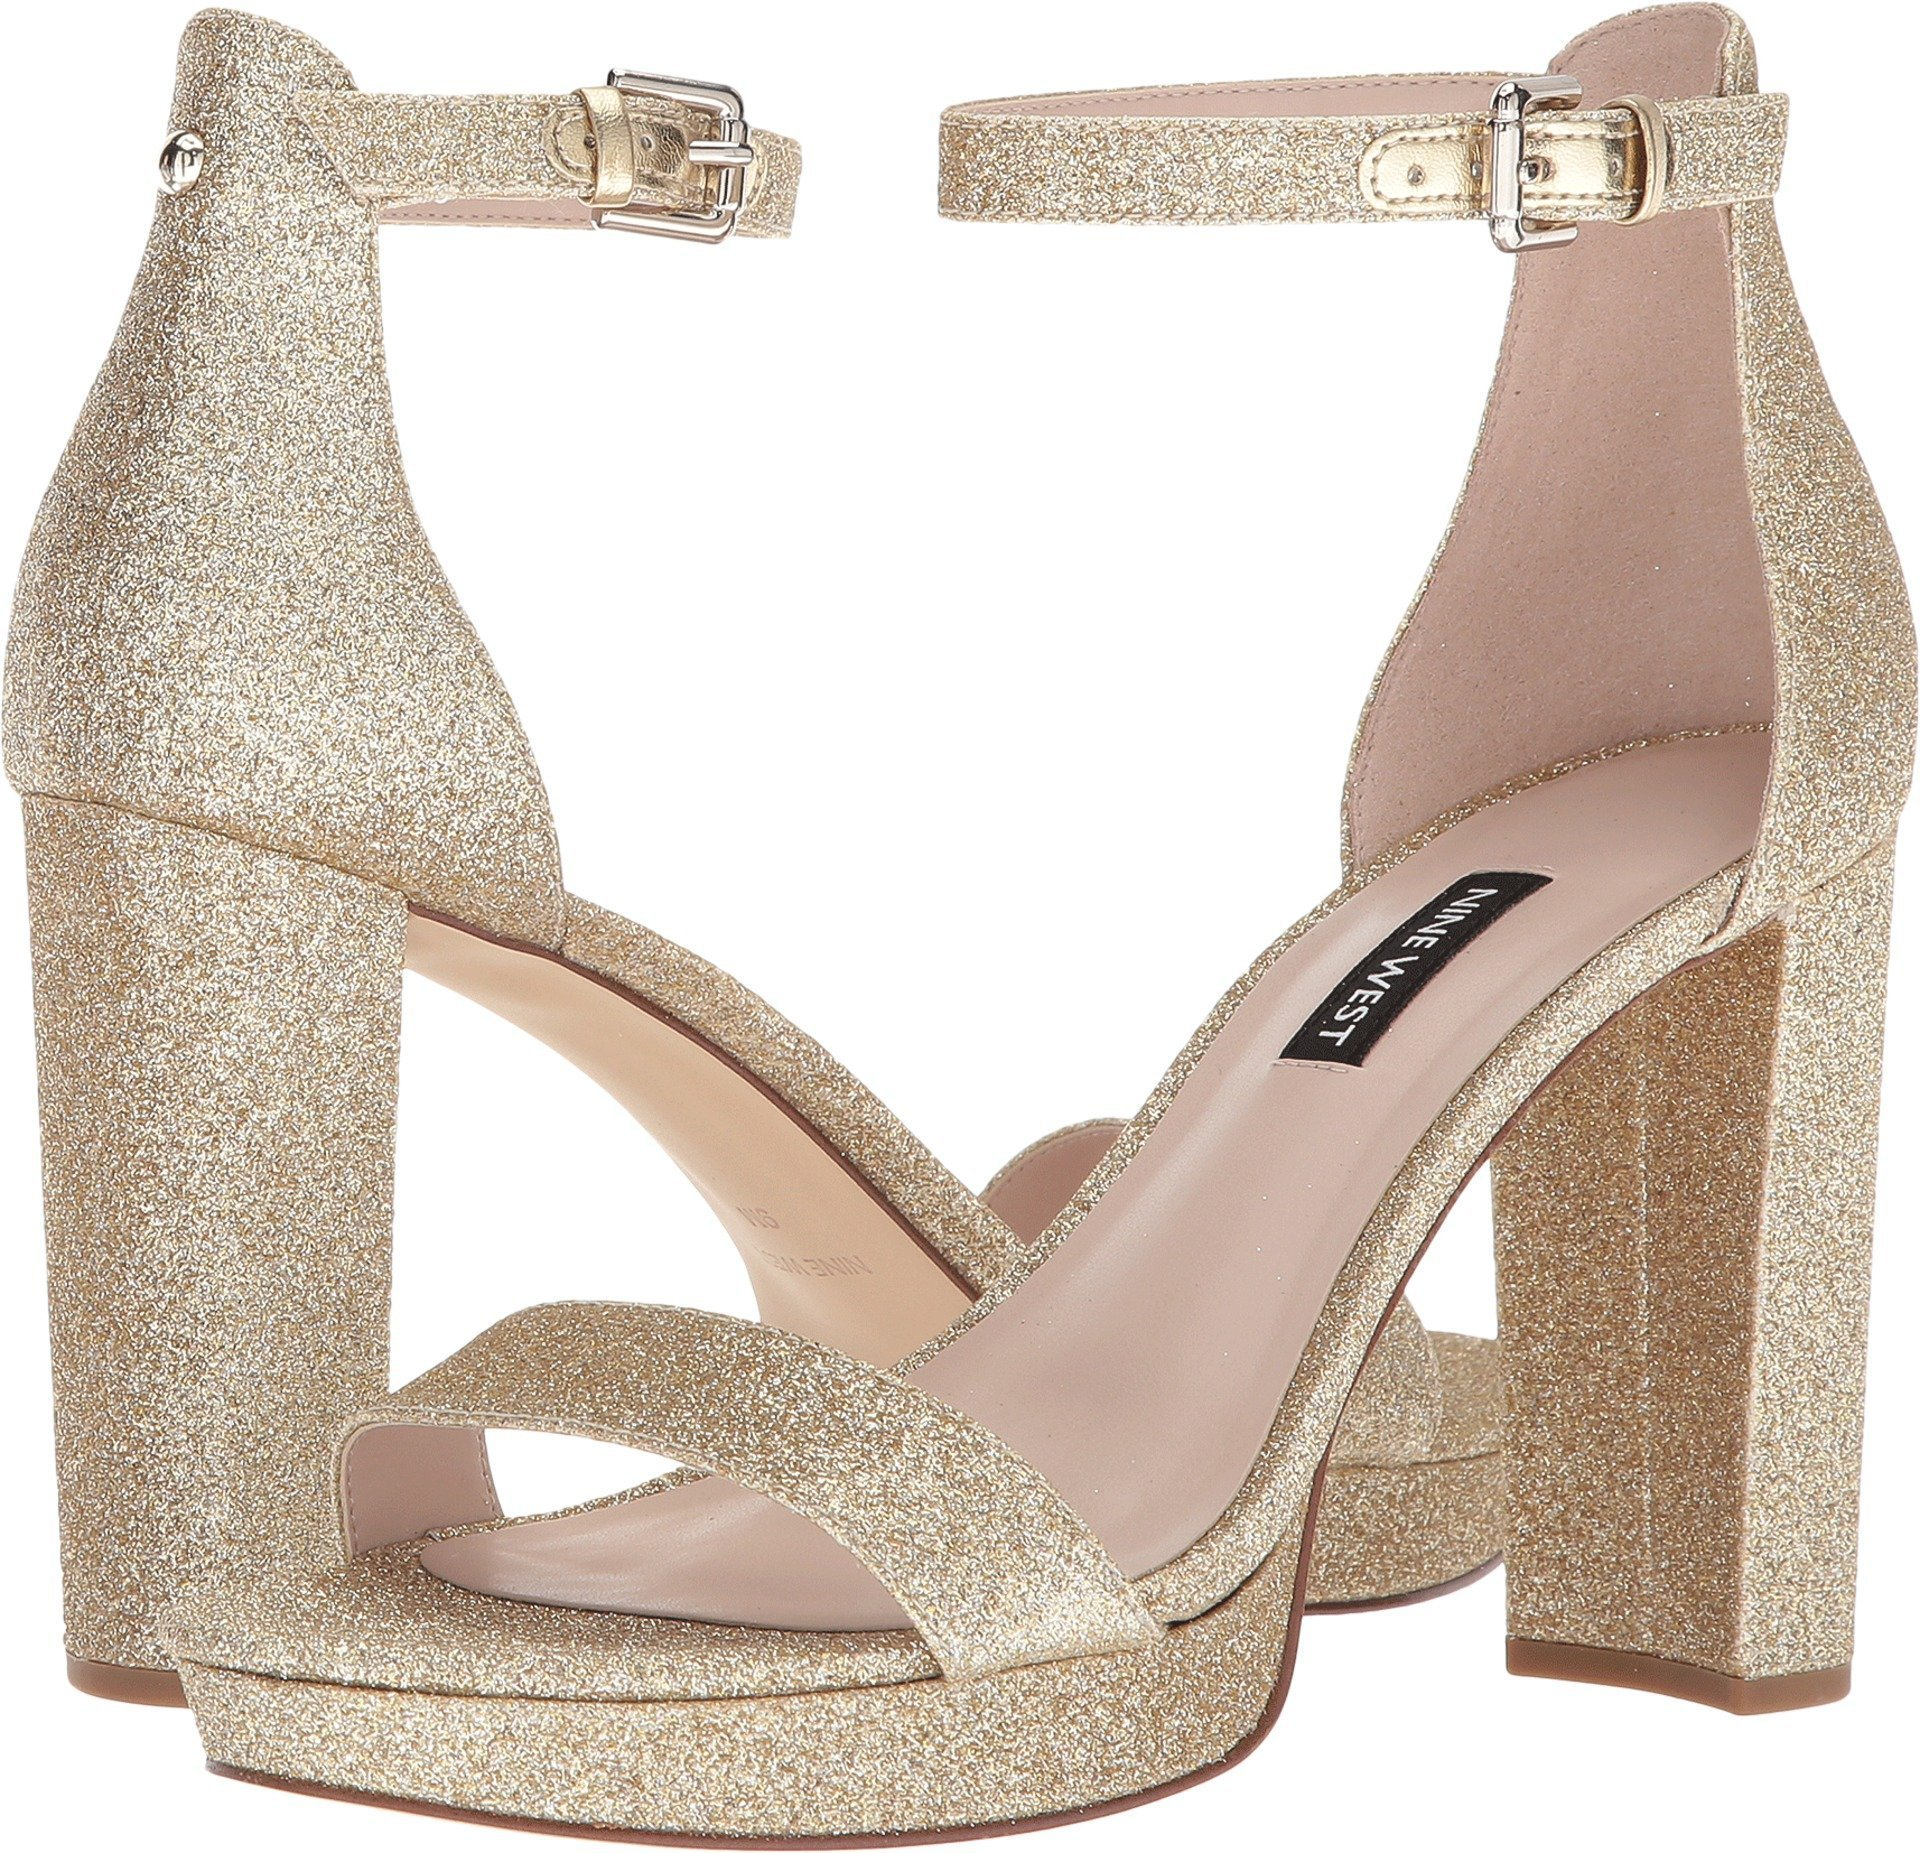 world-wide renown lowest price purchase cheap Nine West Women's Dempsey Platform Heel Sandal Light Gold Synthetic 9.5 M  US M